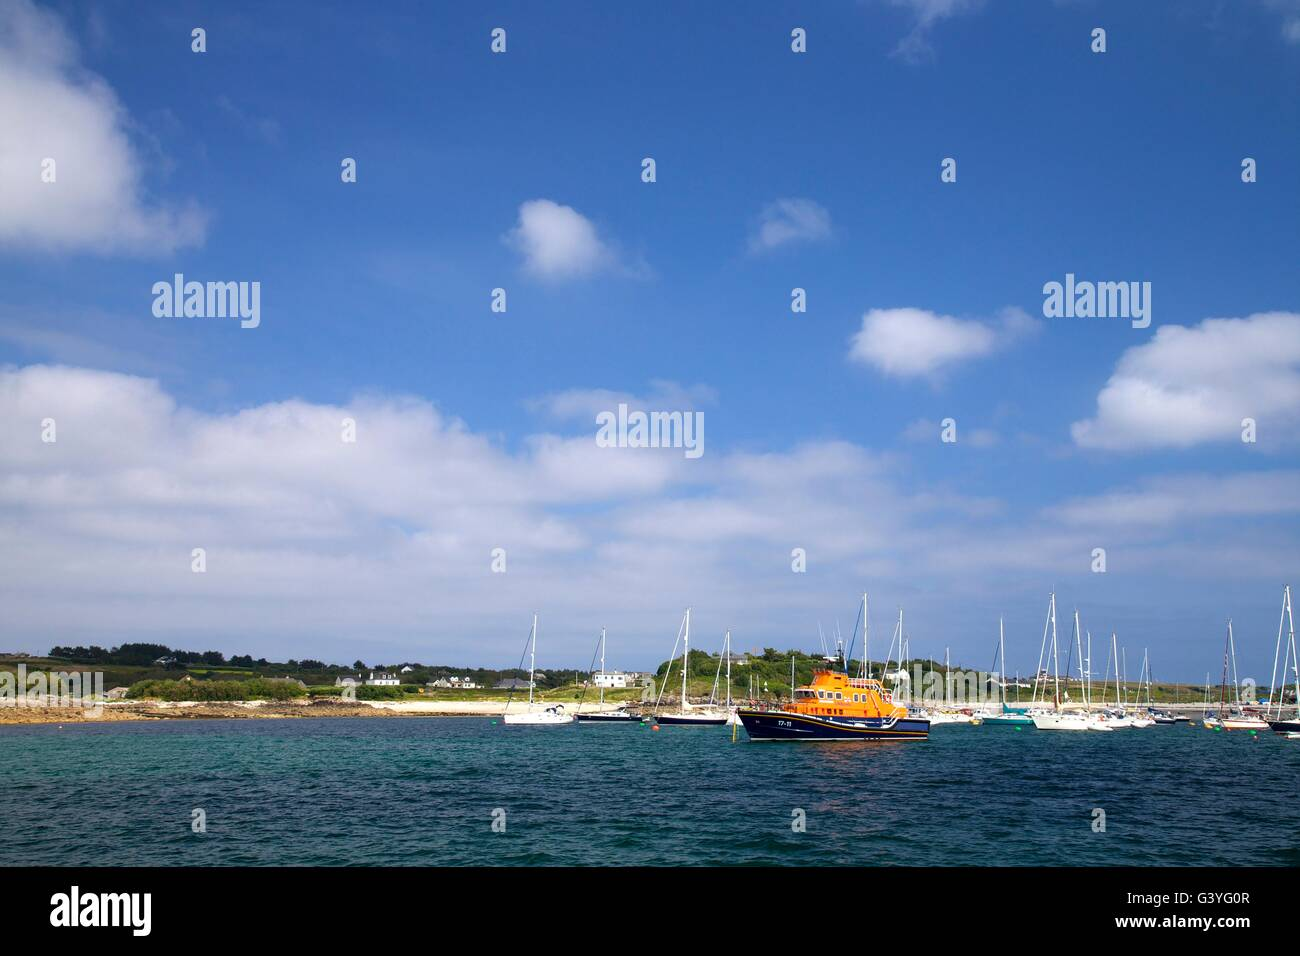 Lifeboat and moored yachts off St Mary's, Isles of Scilly, Cornwall, England, UK, GB Stock Photo